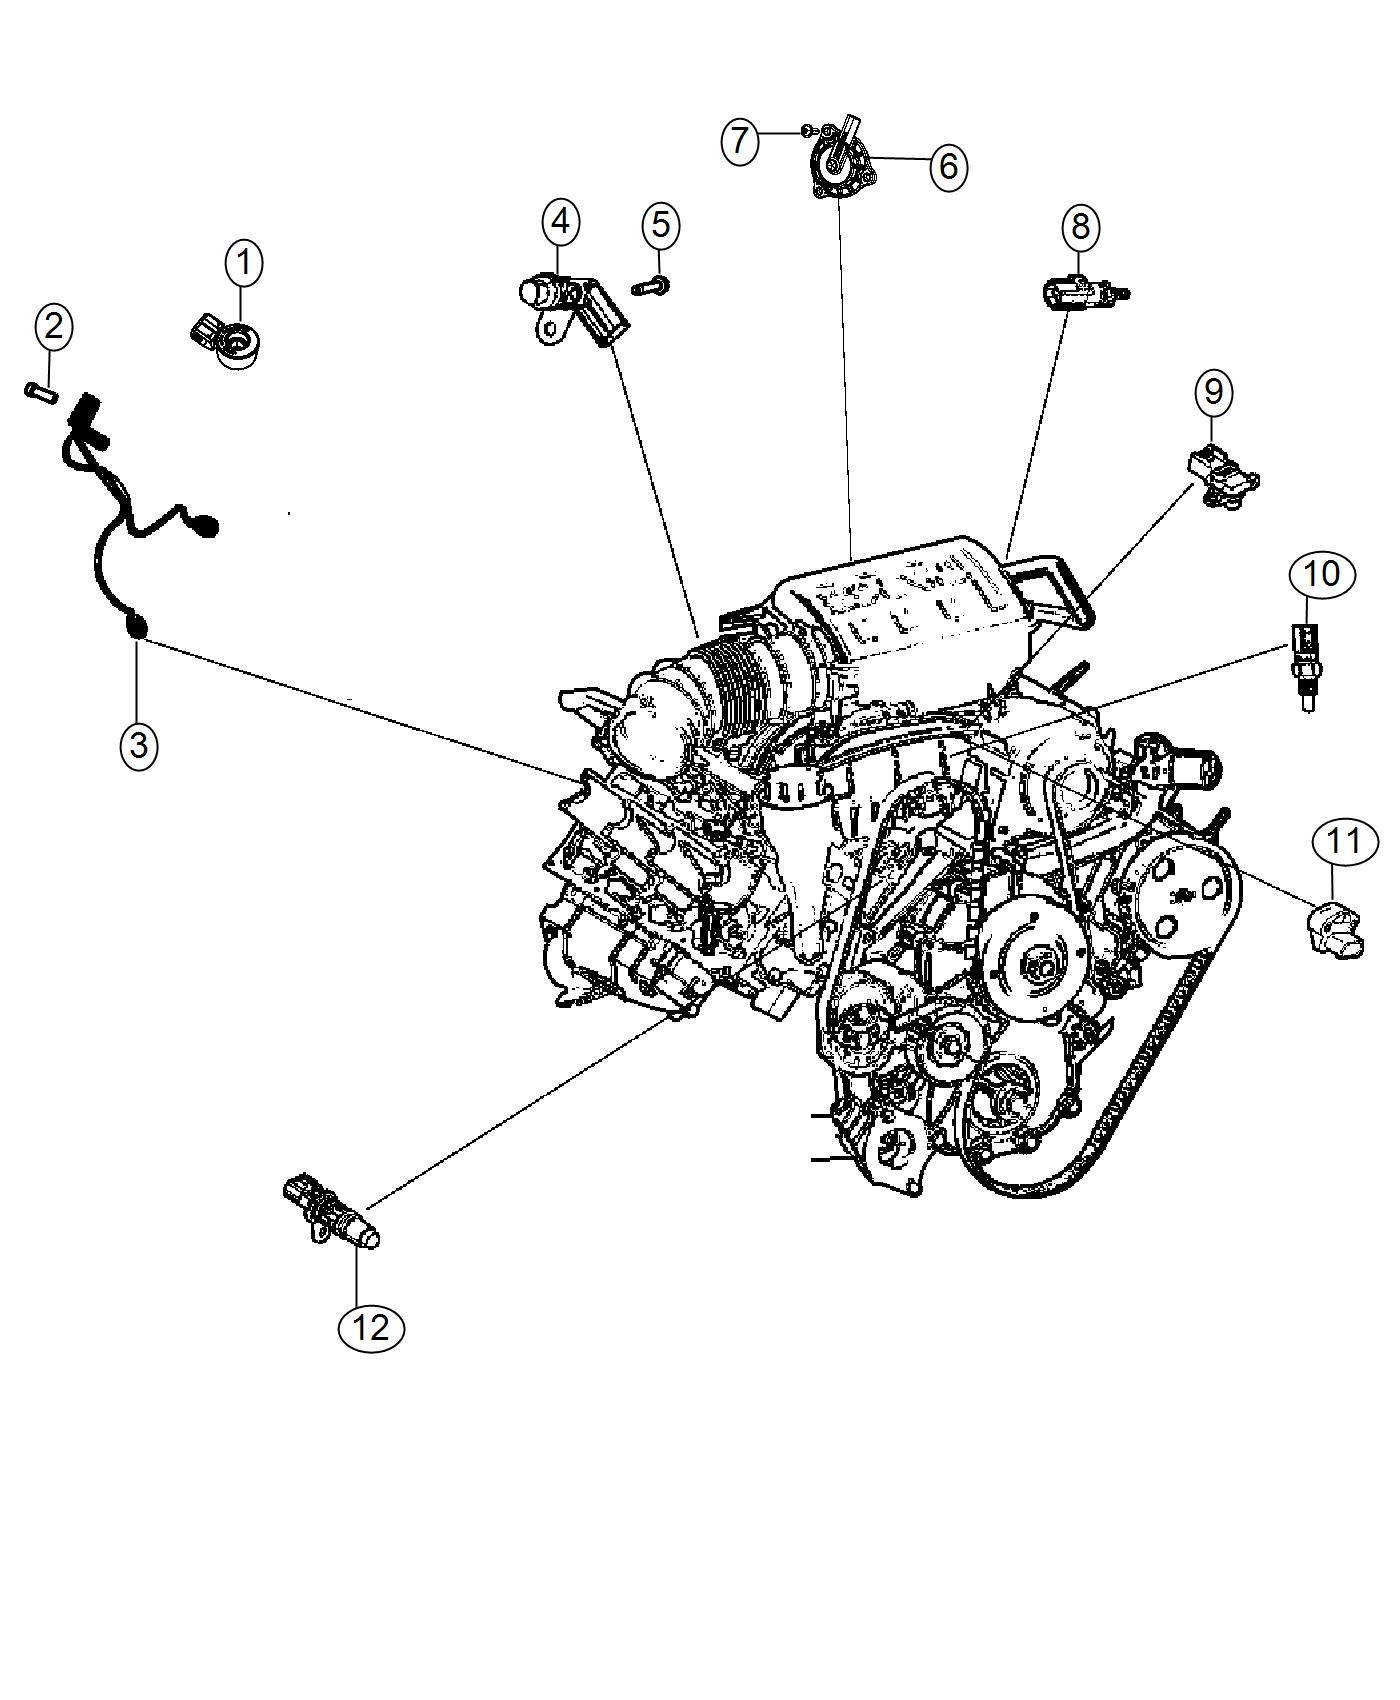 Jeep Wrangler Wiring Used For Knock Oil Pressure